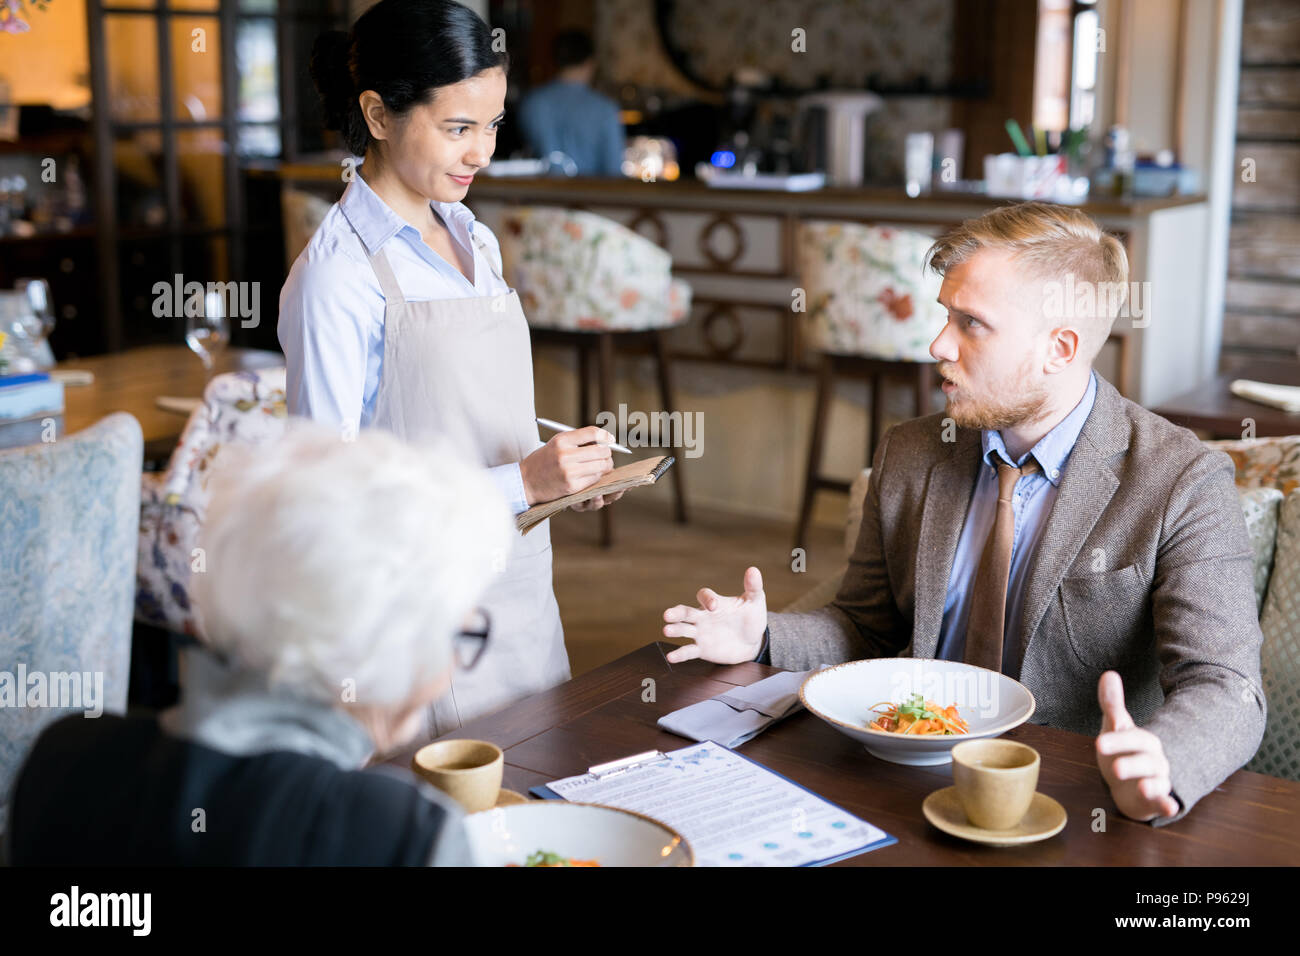 Business lunch at cafe - Stock Image